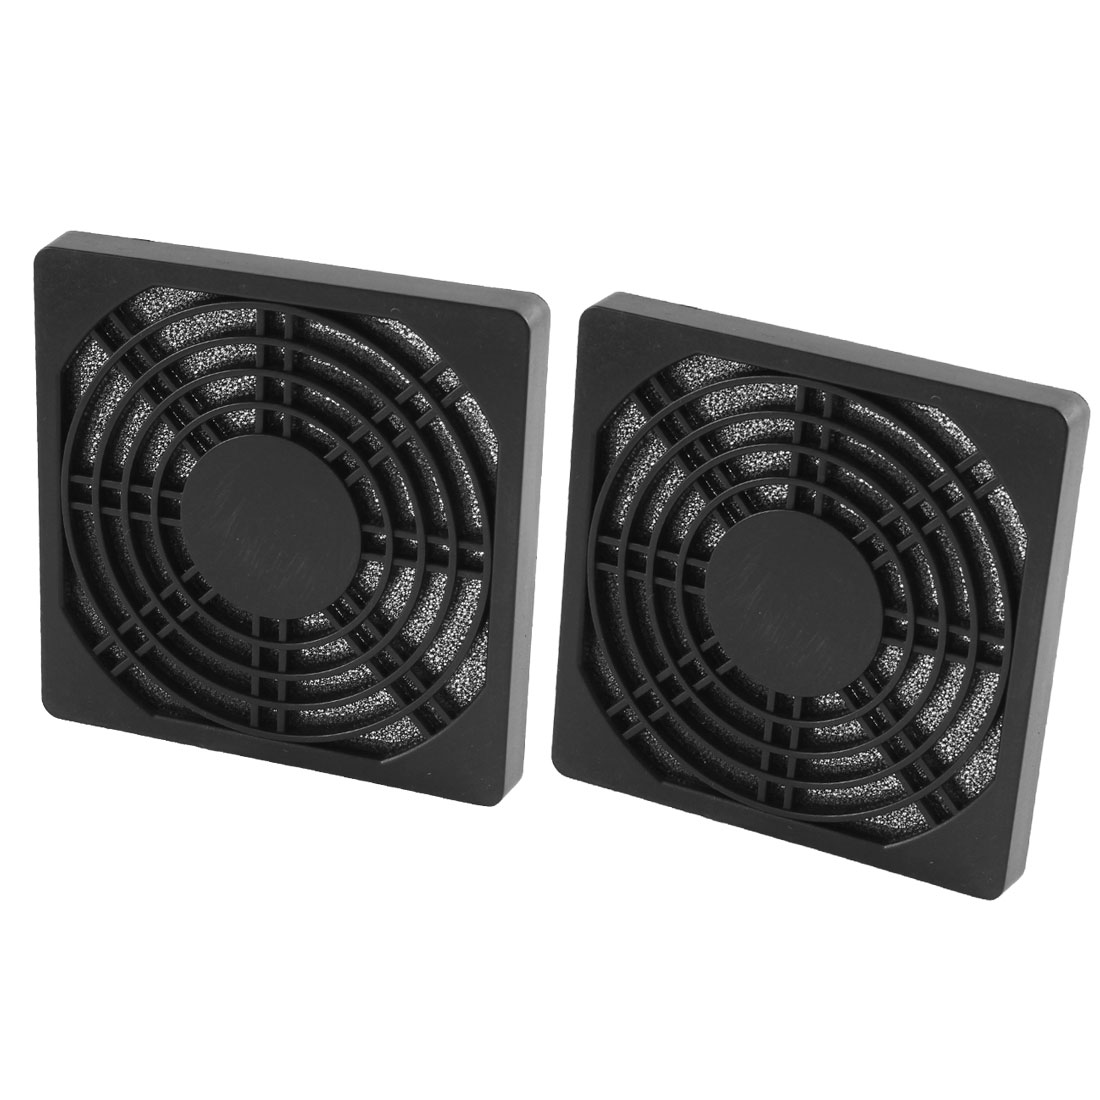 2 Pcs Computer Case Fan Dustproof Mesh Dust Filter Cover Guard 97mmx97mmx10mm